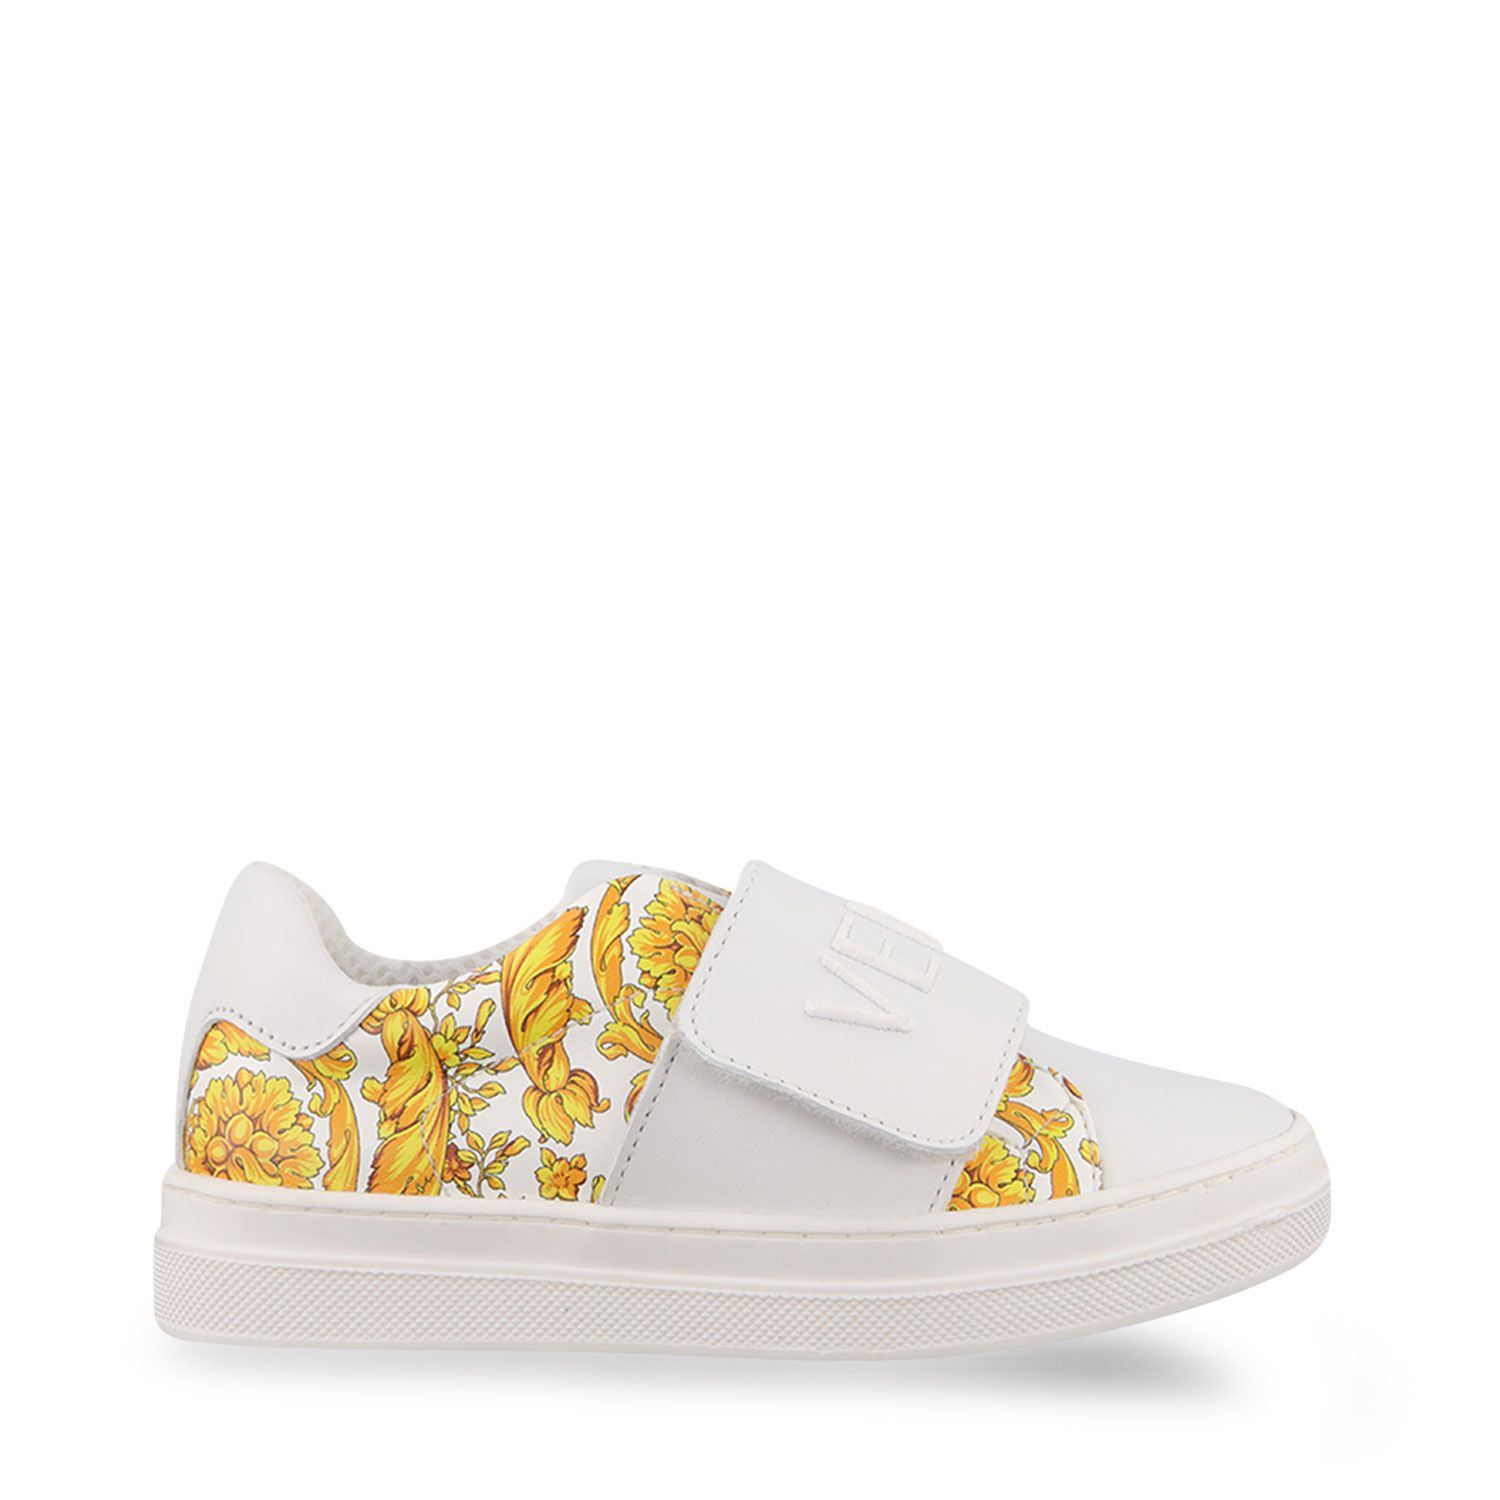 Picture of Versace YHX00028 kids sneakers white